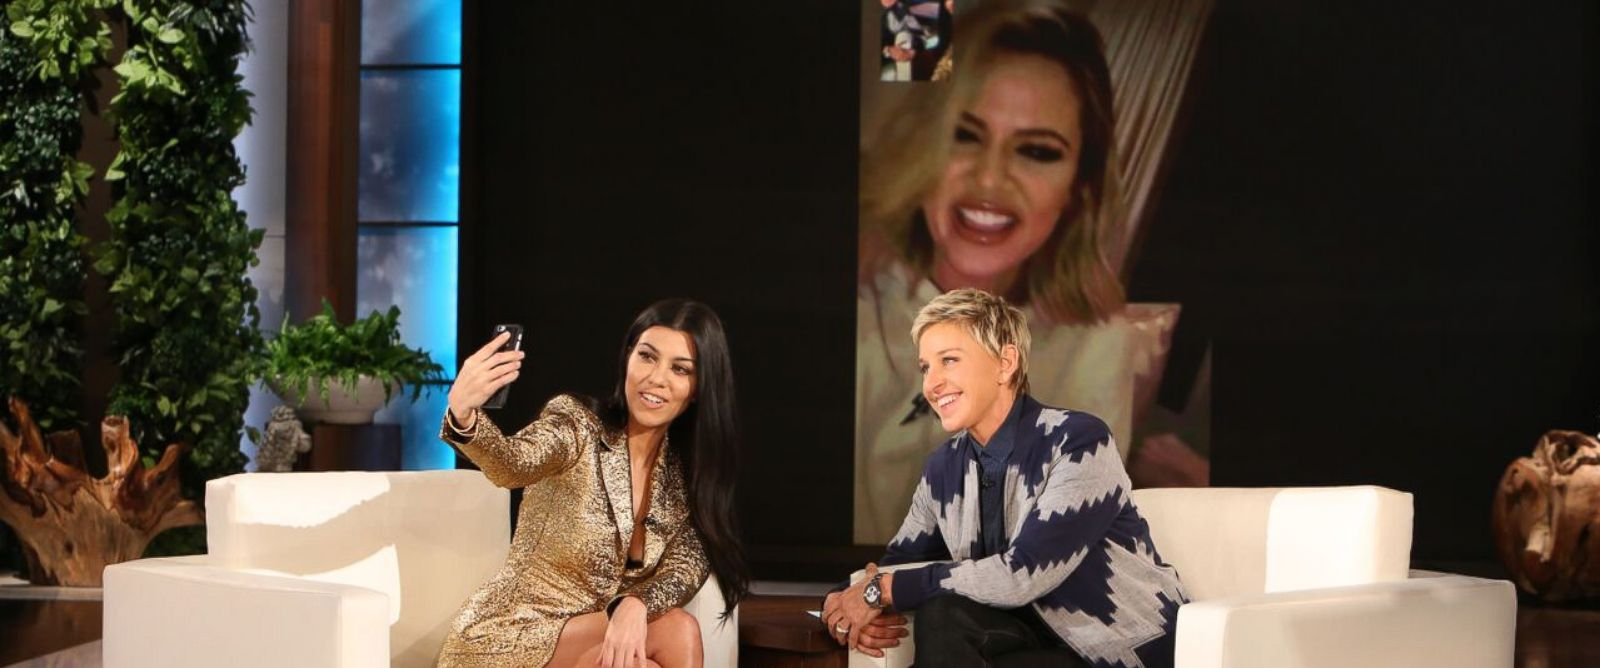 PHOTO: Kourtney Kardashian FaceTimed Khloe Kardashian on the Ellen DeGeneres Show, Jan.25, 2016.